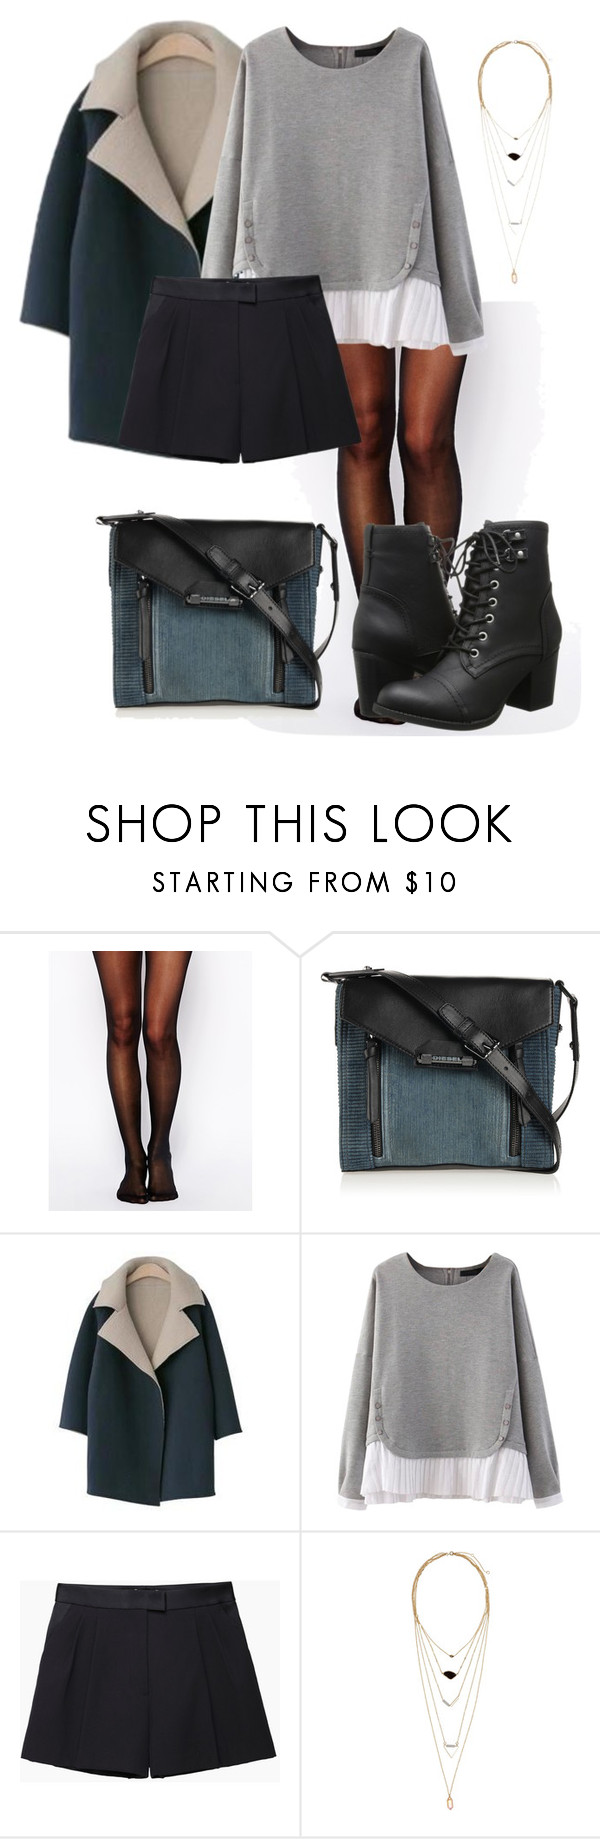 """""""Sem título #796"""" by biaprestes on Polyvore featuring moda, Wolford, Diesel, PEPER, 3.1 Phillip Lim, H&M e Madden Girl"""